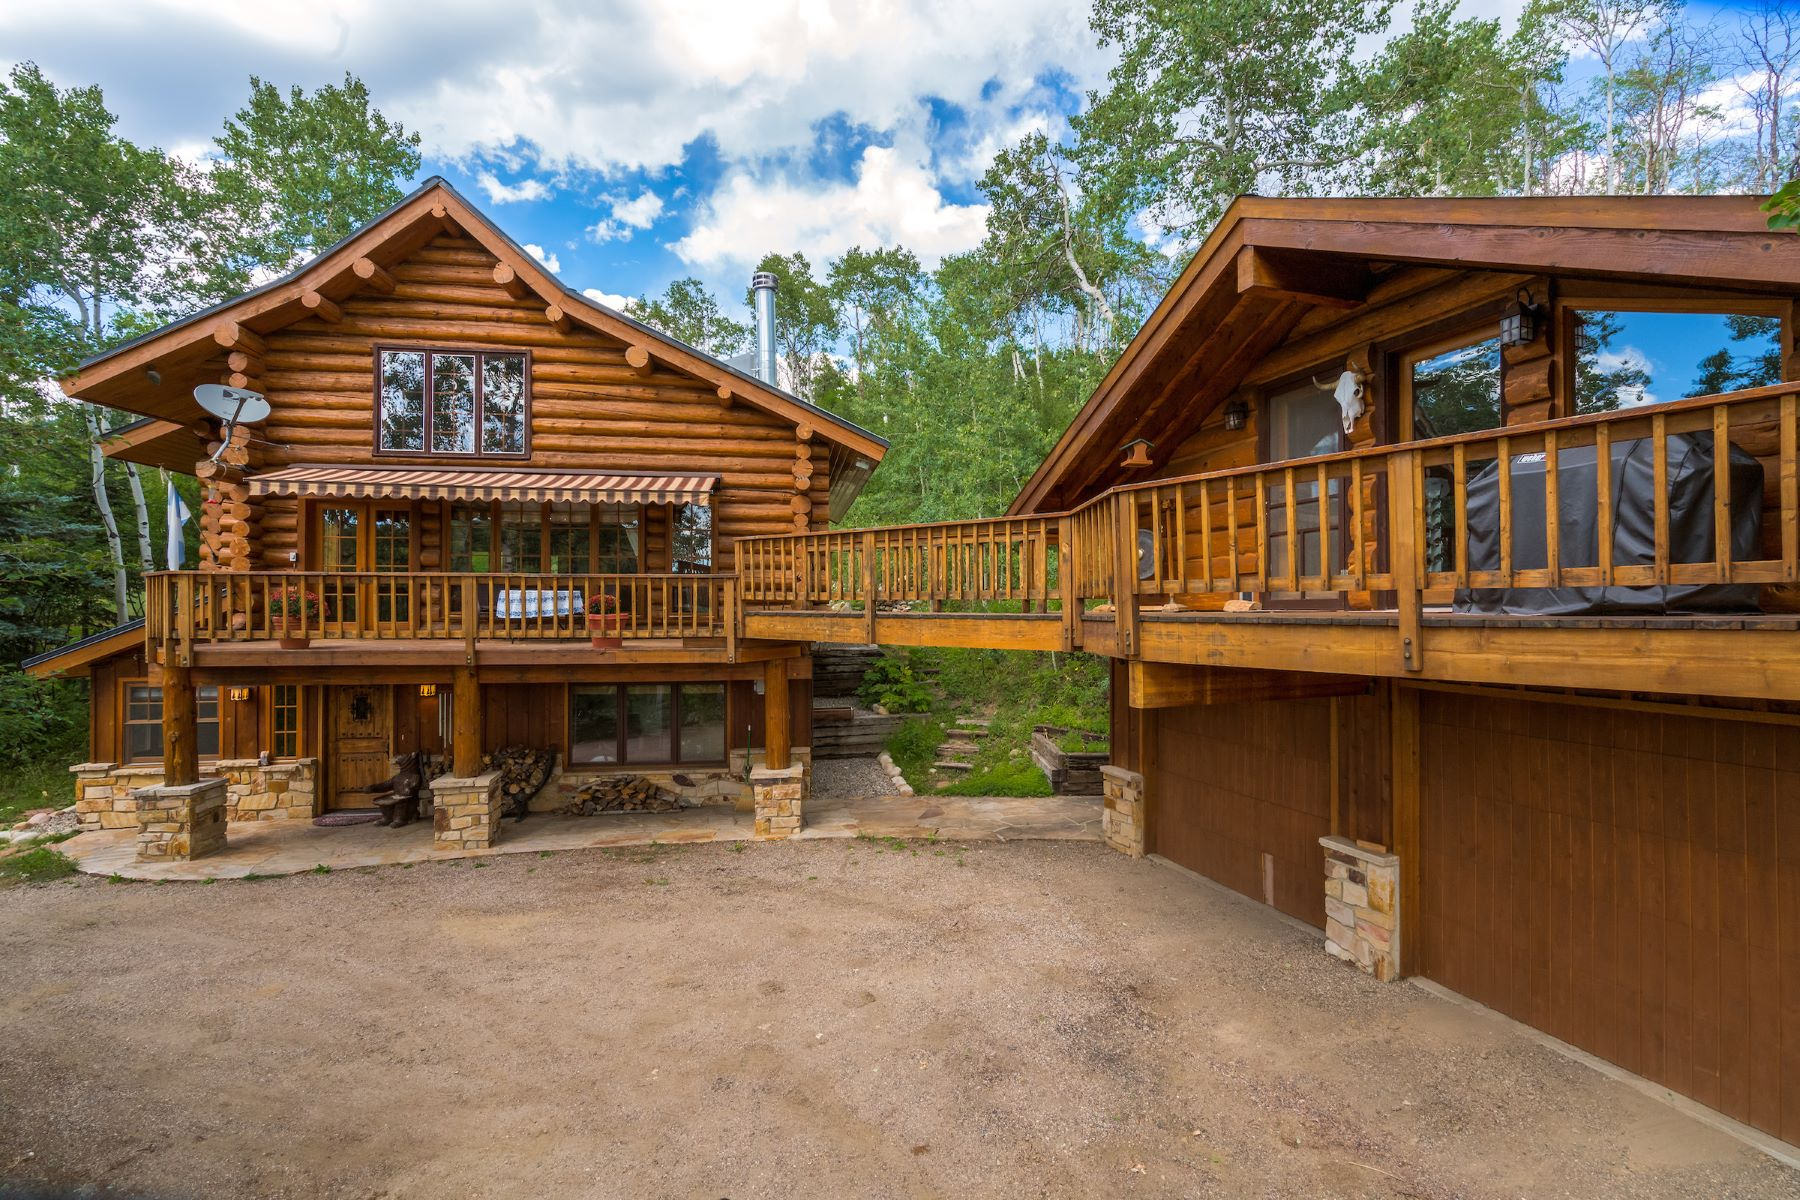 Maison unifamiliale pour l Vente à Whitewood Log Home 27875 Whitewood Dr E Steamboat Springs, Colorado 80487 États-Unis